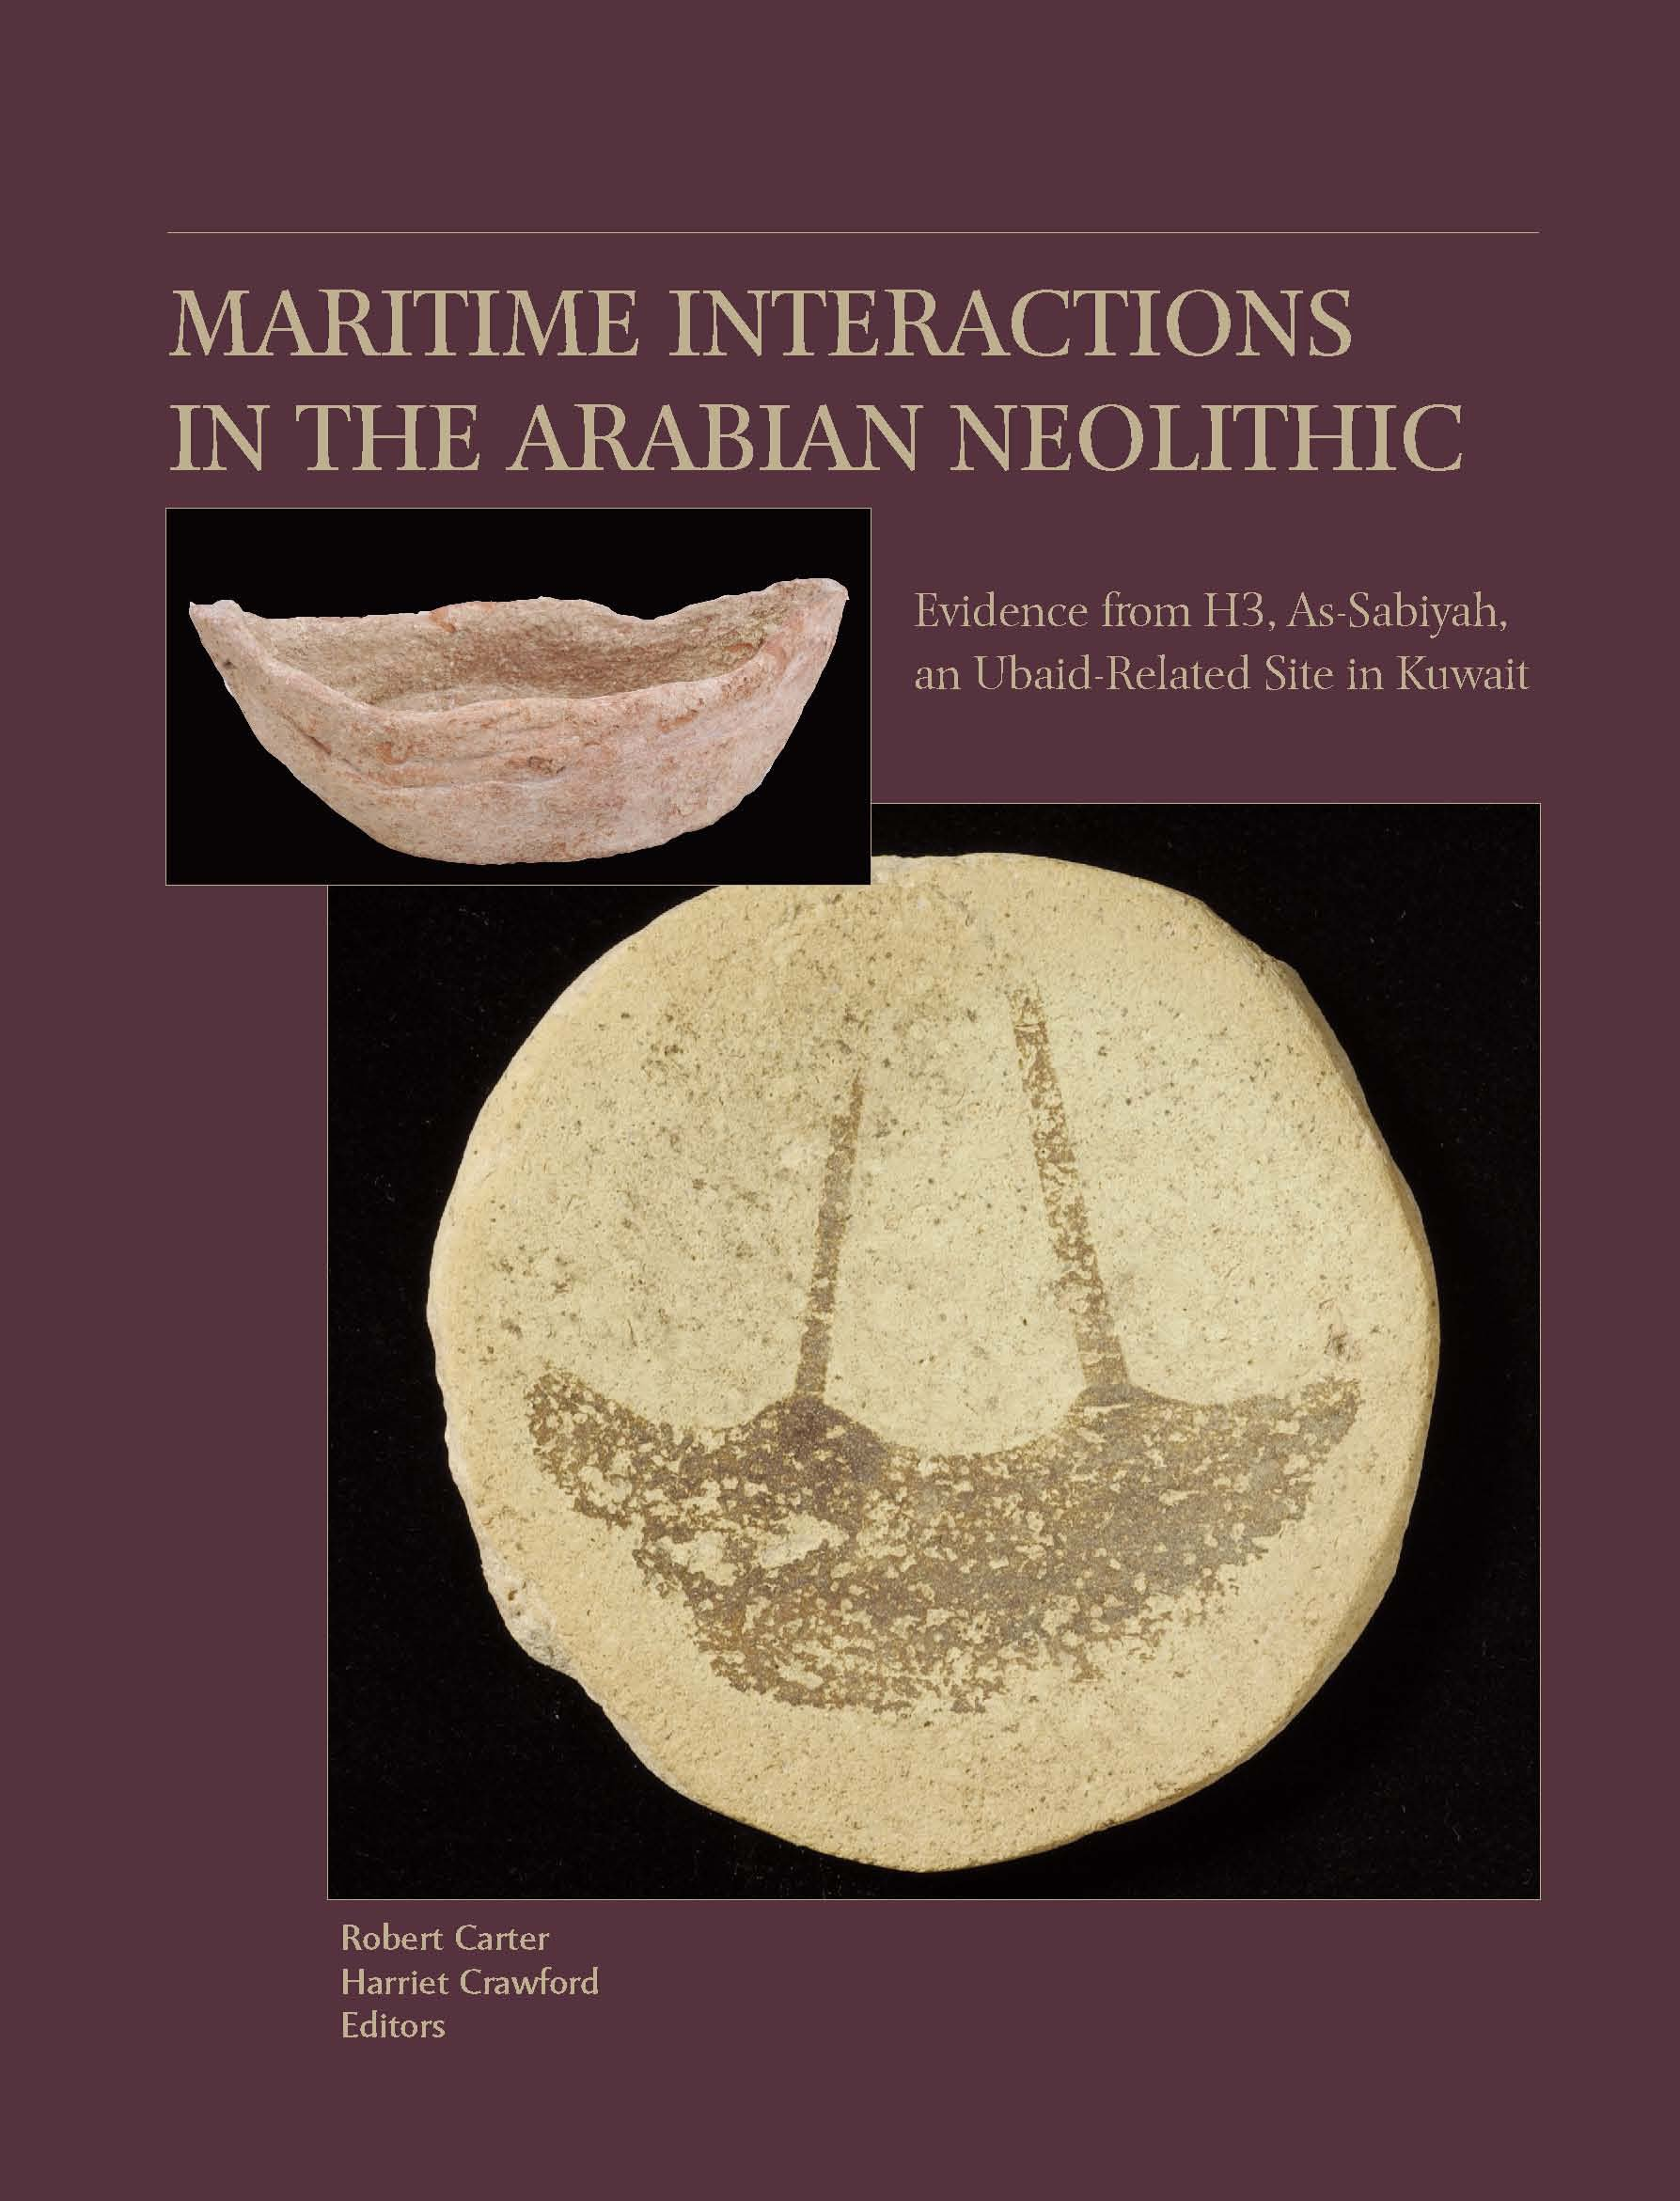 Read Online Maritime Interactions in the Arabian Neolithic (American School of Prehistoric Research Monograph Series) PDF ePub fb2 ebook